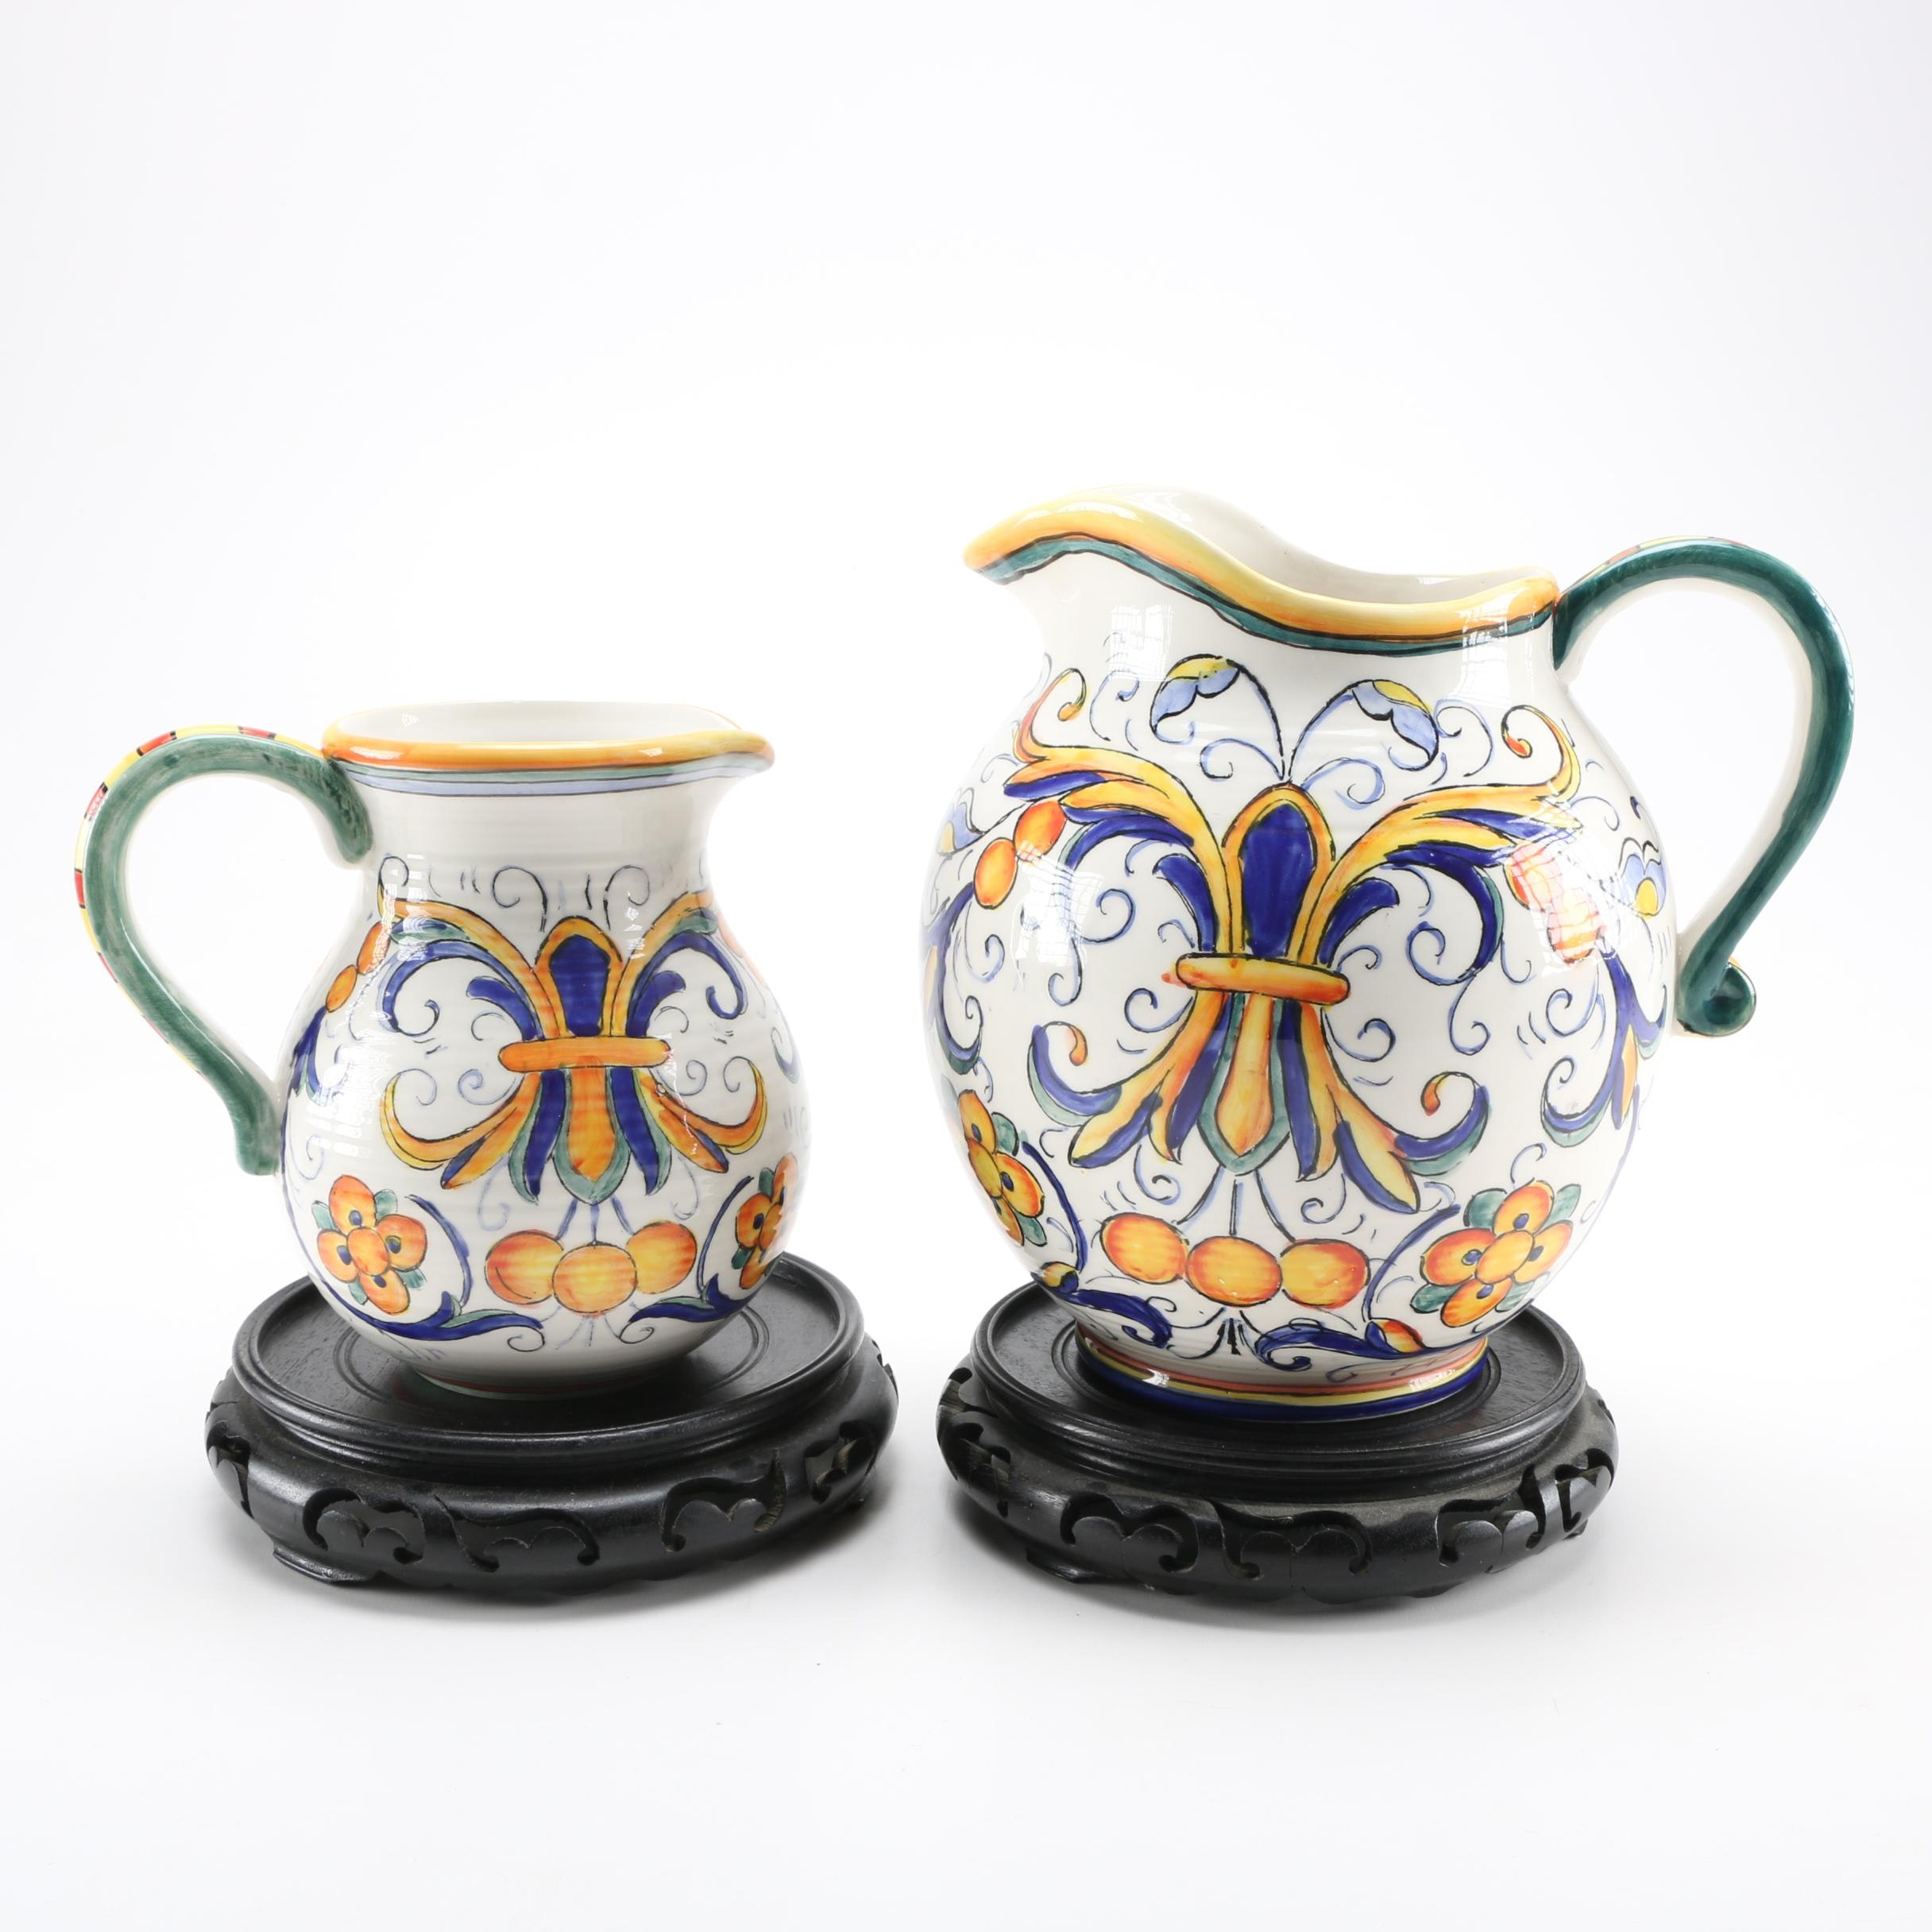 Italian-Style Ceramic Pitchers Including Wooden Stands